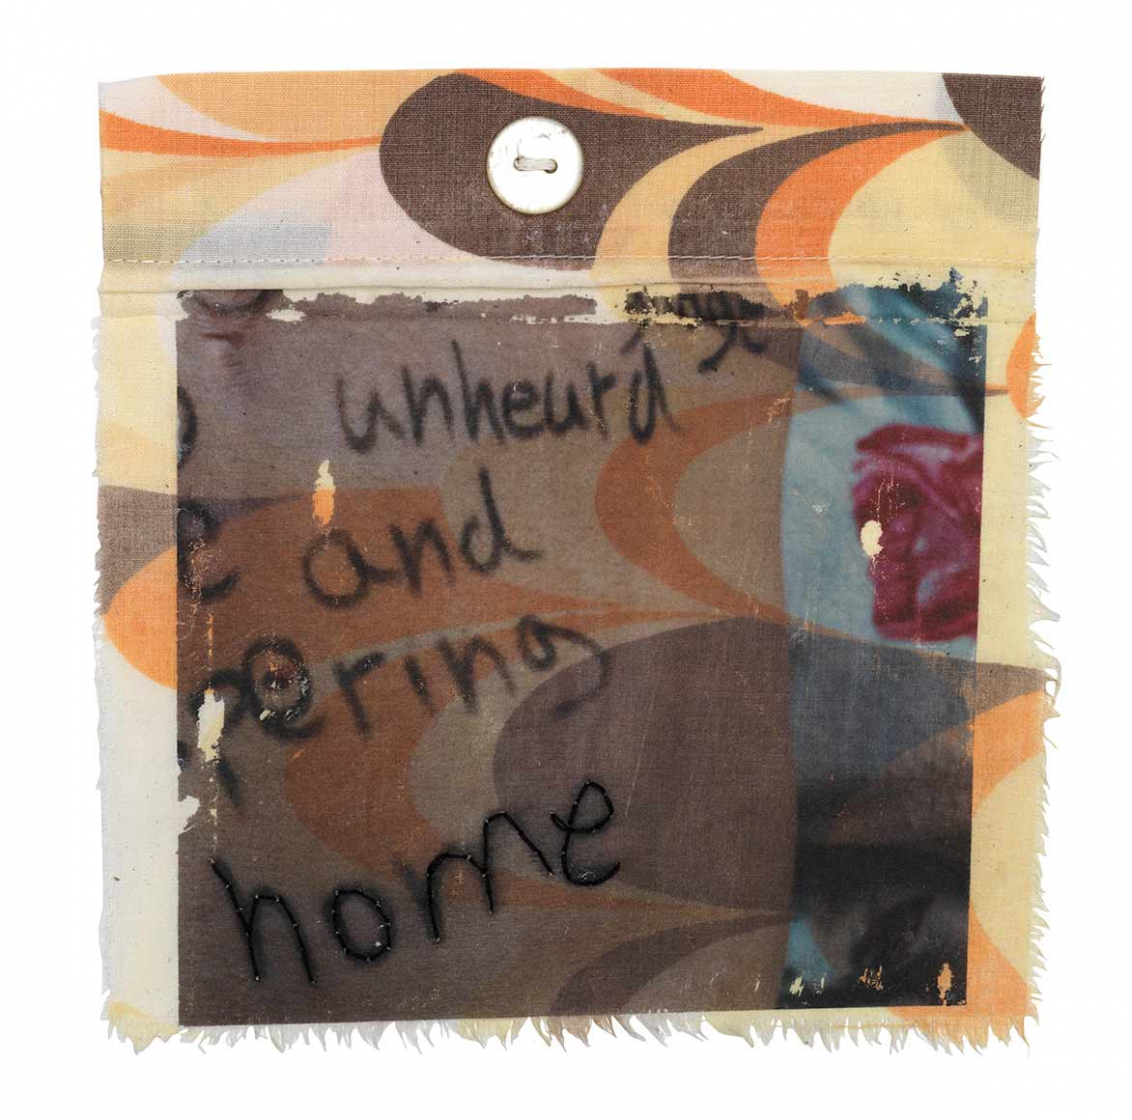 """Nearly square piece of fabric from a used duvet cover with fraying edges and a multicolored """"swoop"""" pattern with English words written on it, including the word """"home"""" traced over in thread"""